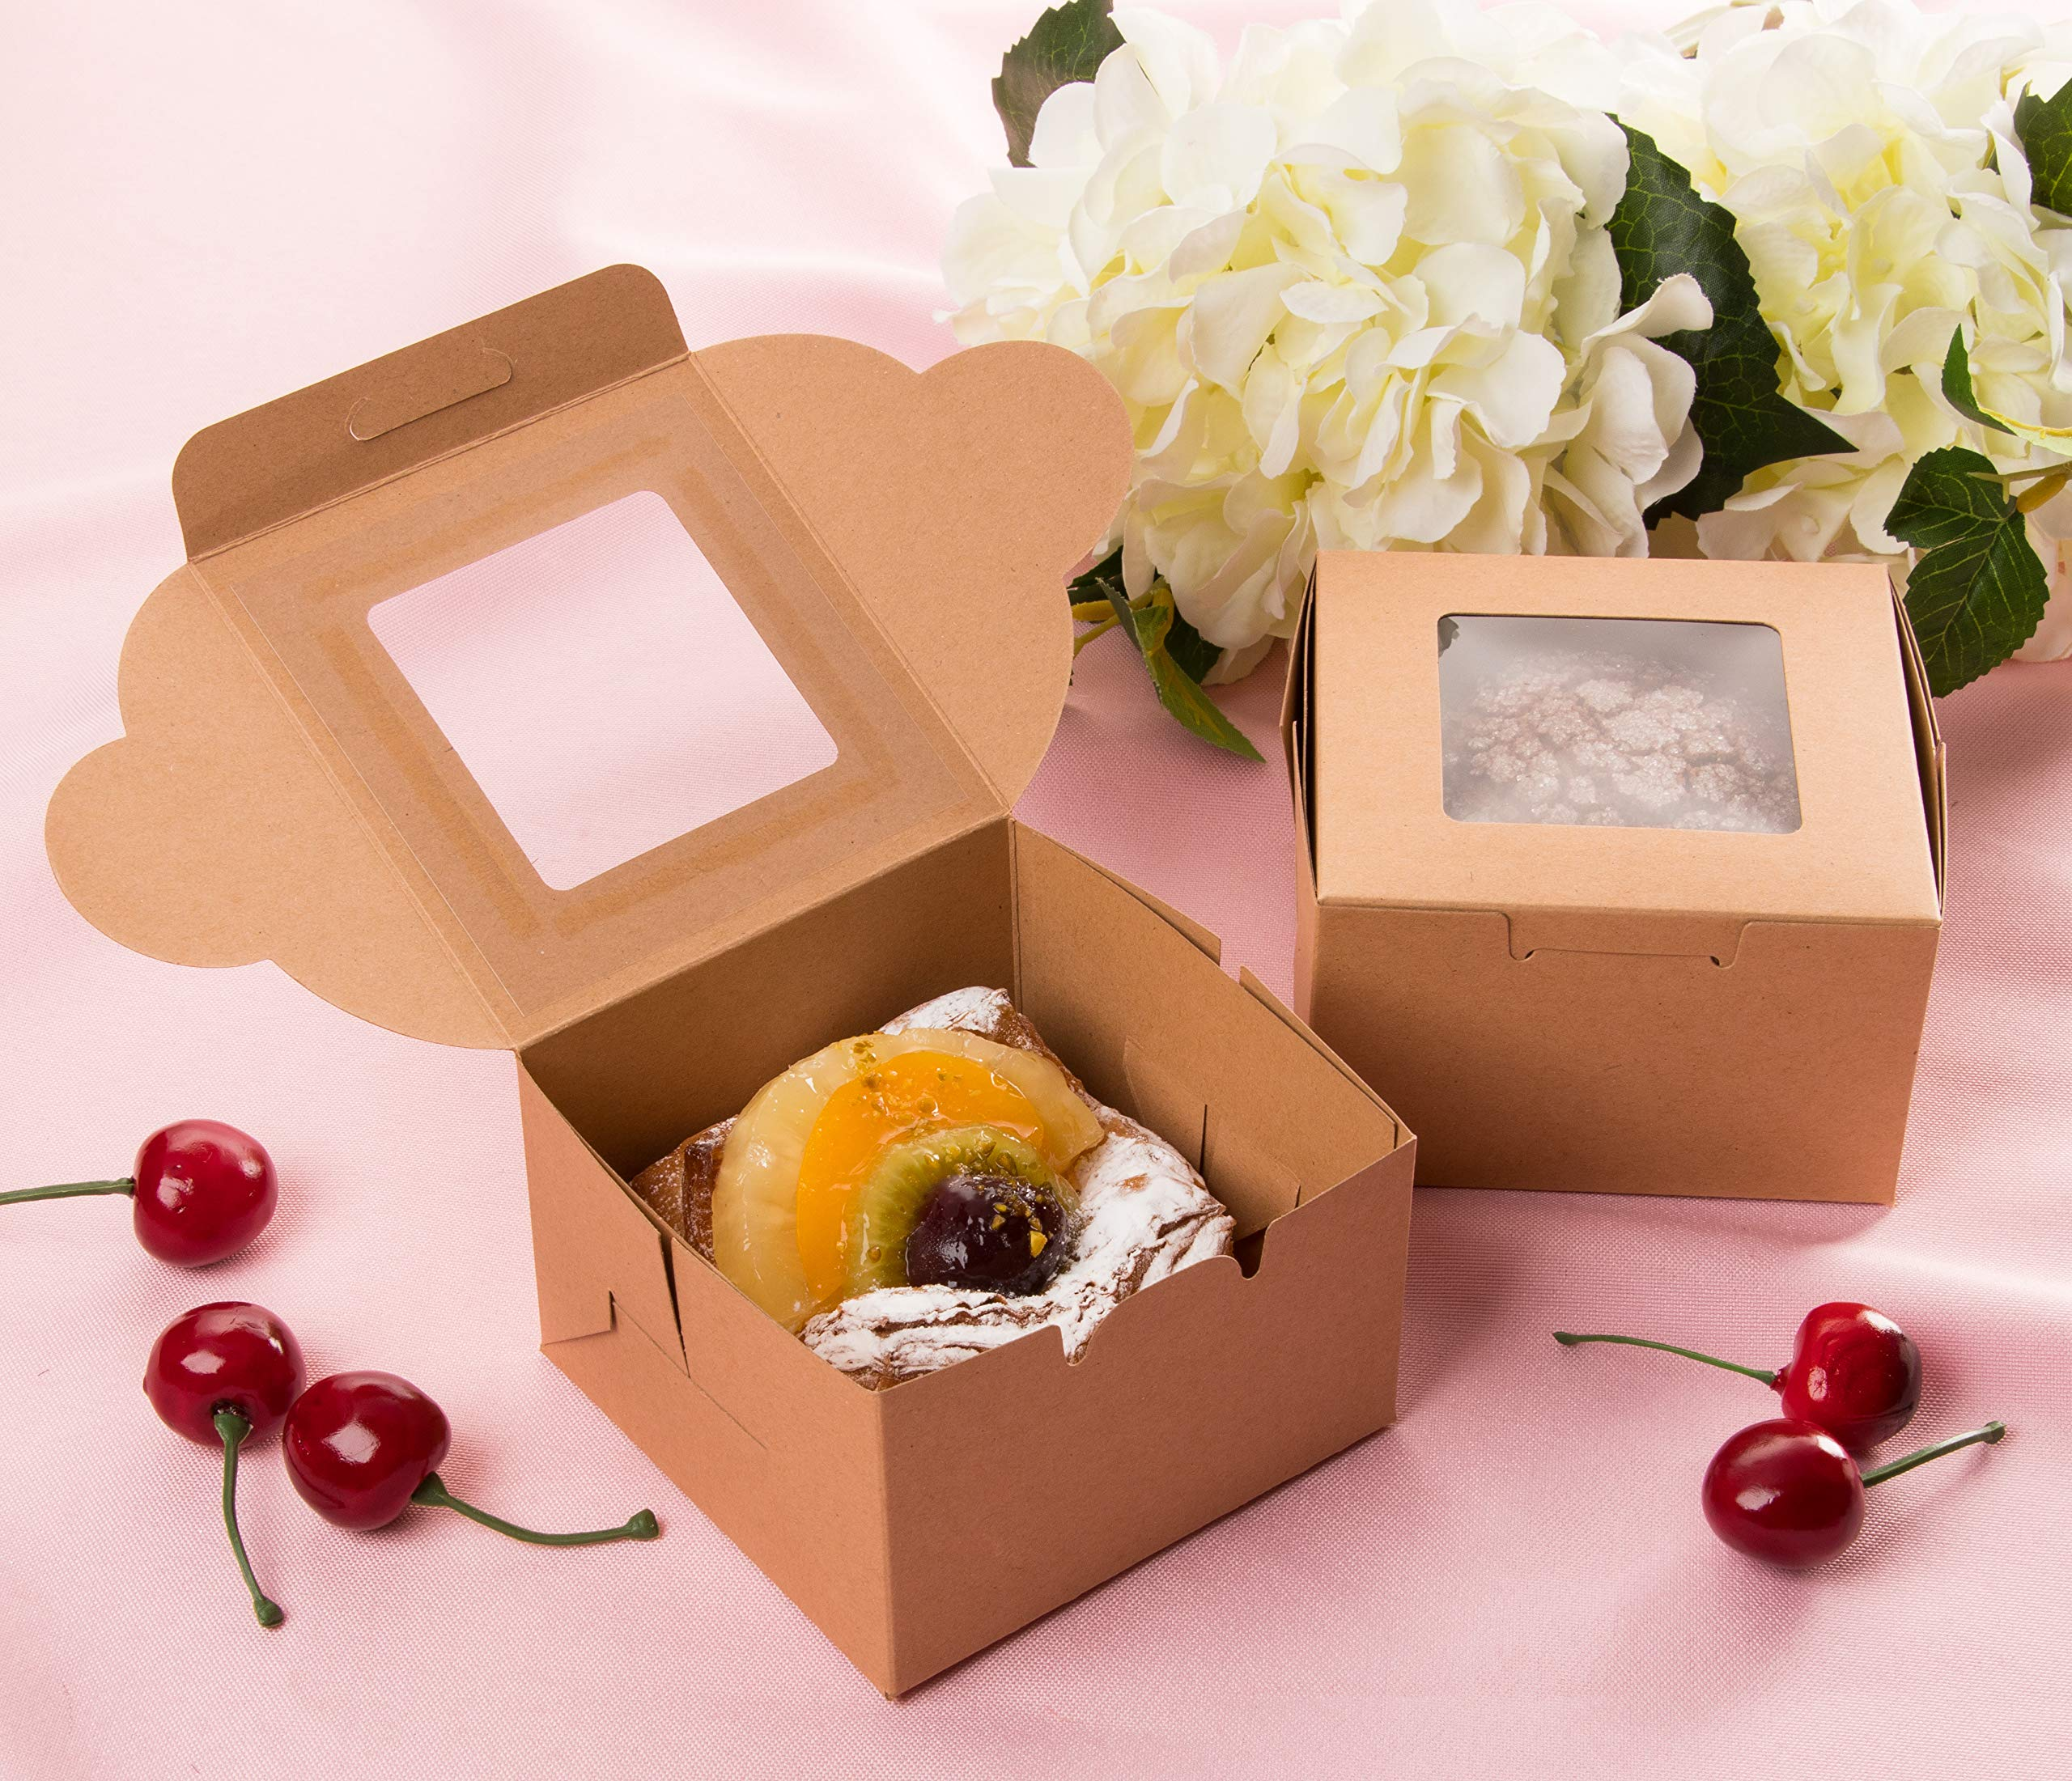 Kraft Paper Bakery Boxes - 50-Pack Single Pastry Box 4-Inch Packaging with Clear Display Window, Donut, Mini Cake, Pie Slice, Dessert Disposable Take-Out Container, Holds 1, Brown, 4 x 2.3 x 4 Inches by Juvale (Image #3)